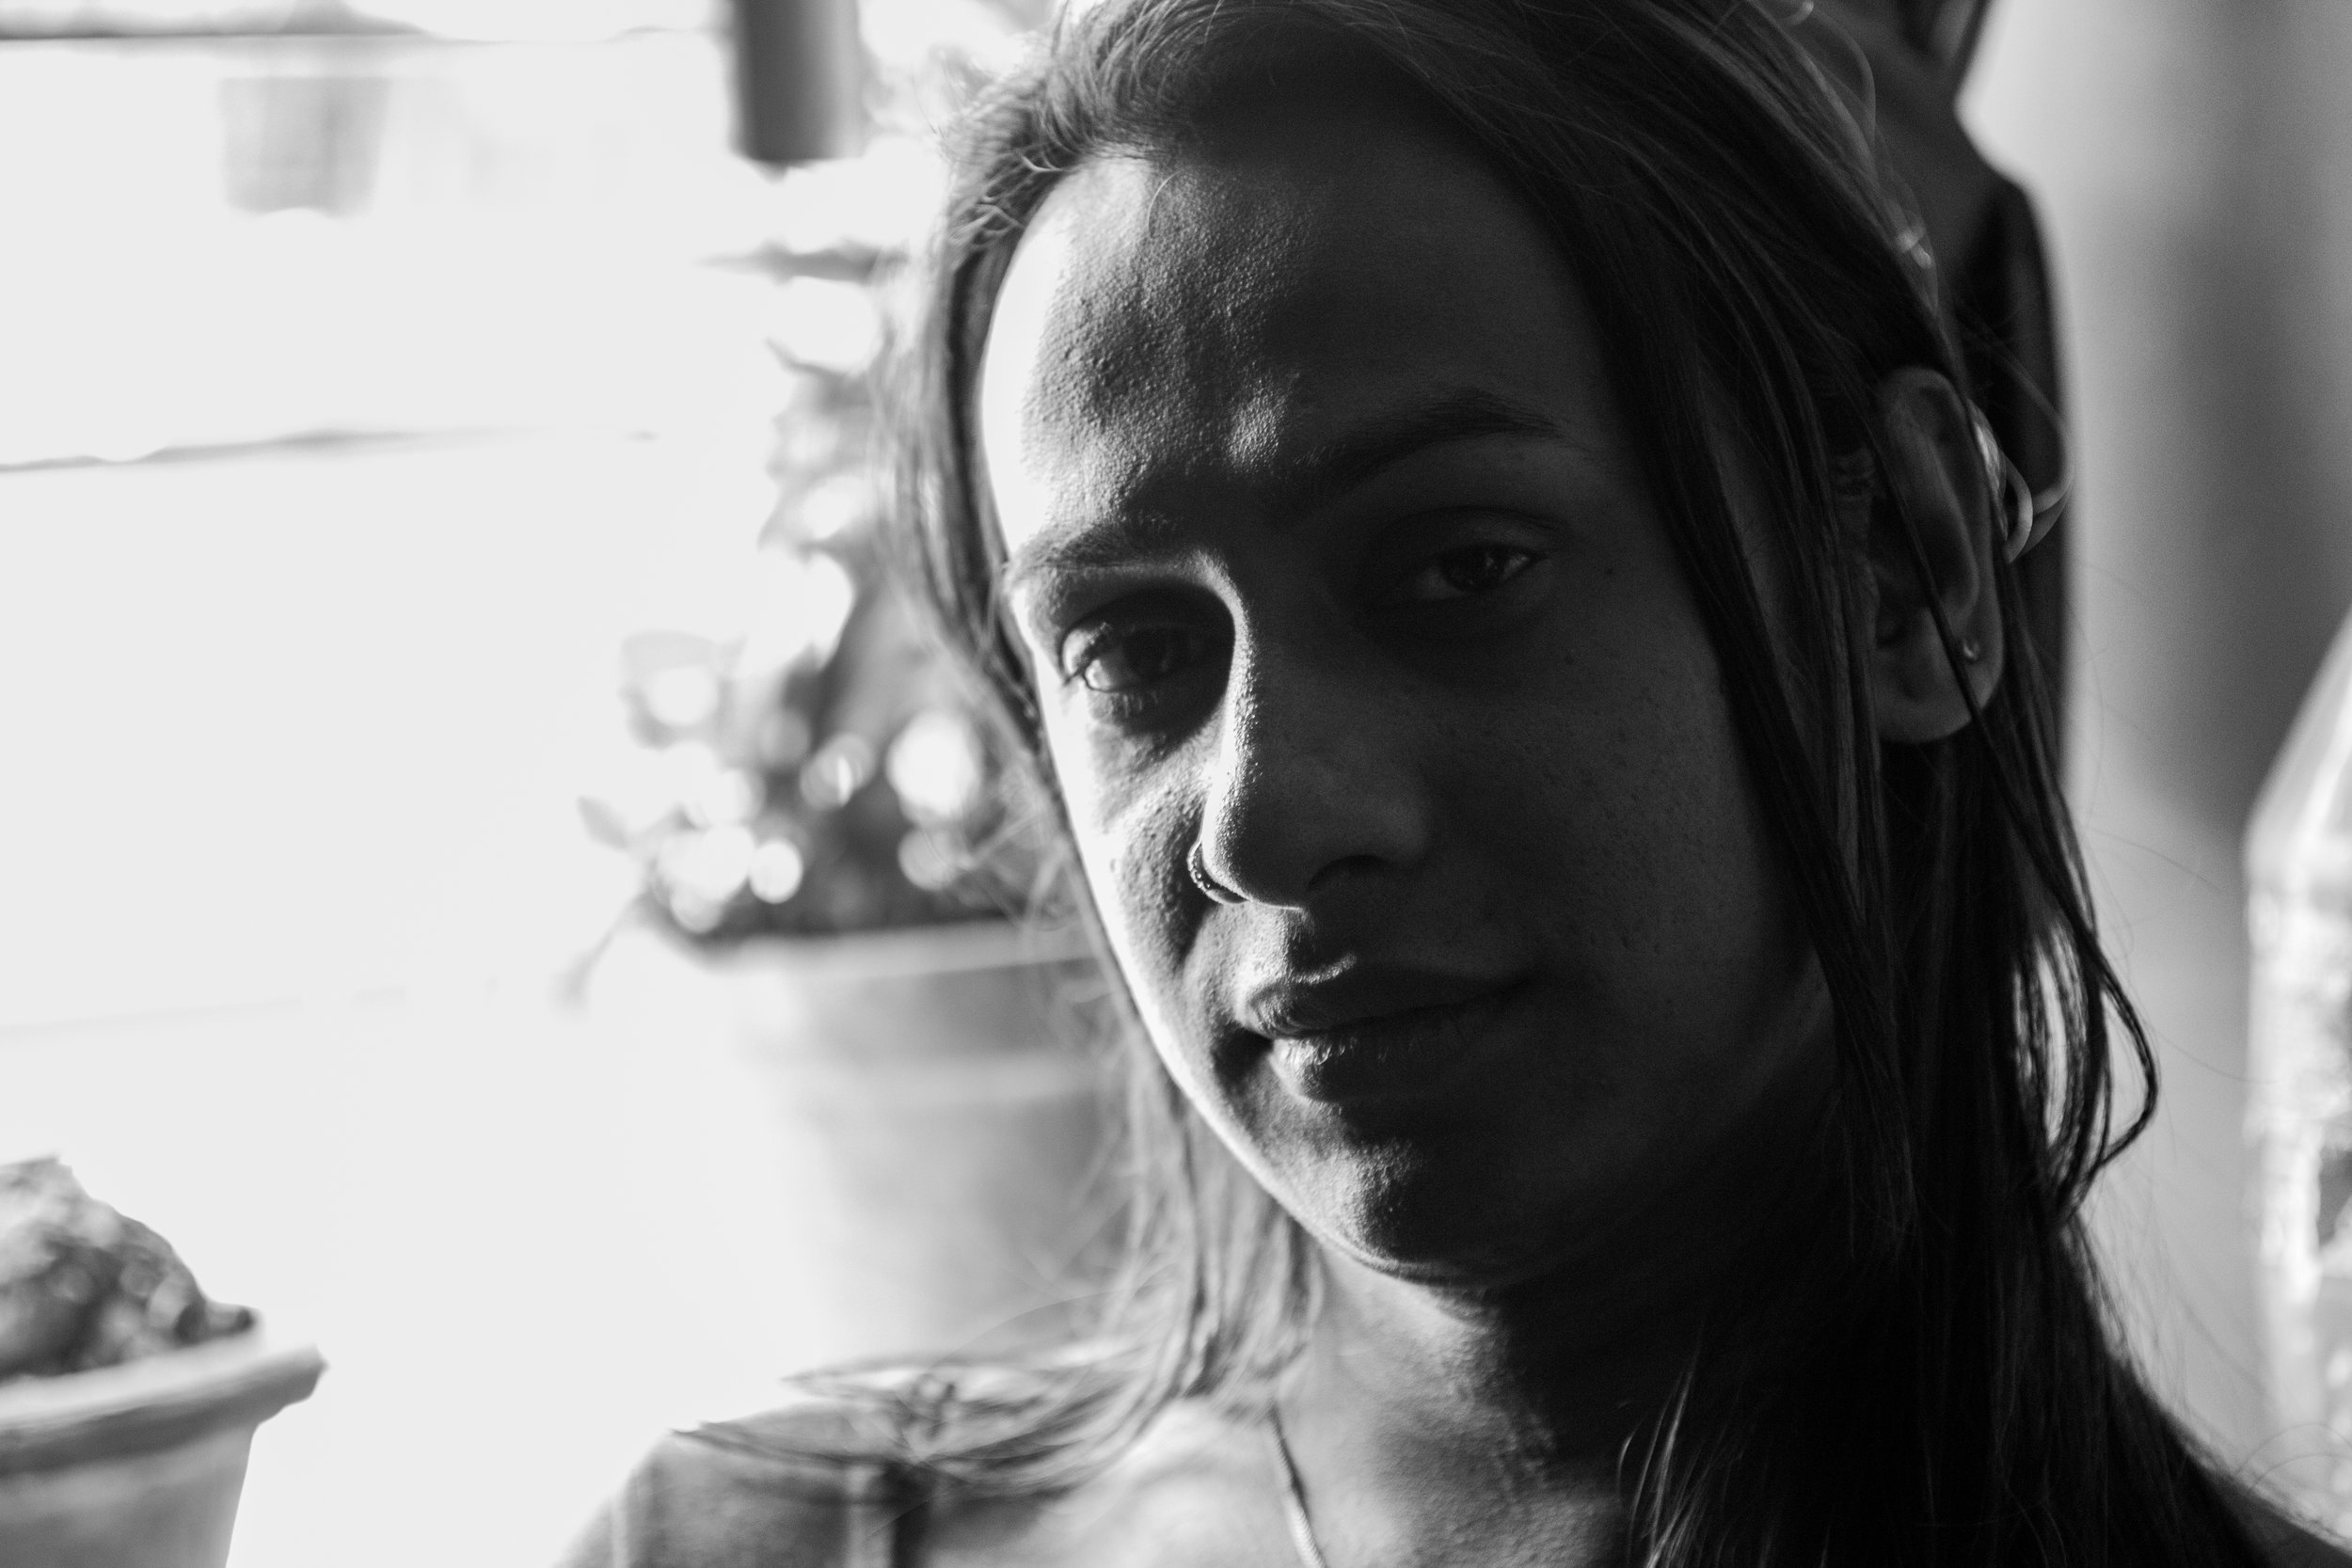 In Kolkata, transwomen are a part of varied work sectors — some work as hijras on the streets, others as sex workers, while some are IT professionals, and others are beauticians in salons.    A majority of these women told stories of unaccepting families, a struggle to convince people around them of their choices, and a sense of abandonment from society.